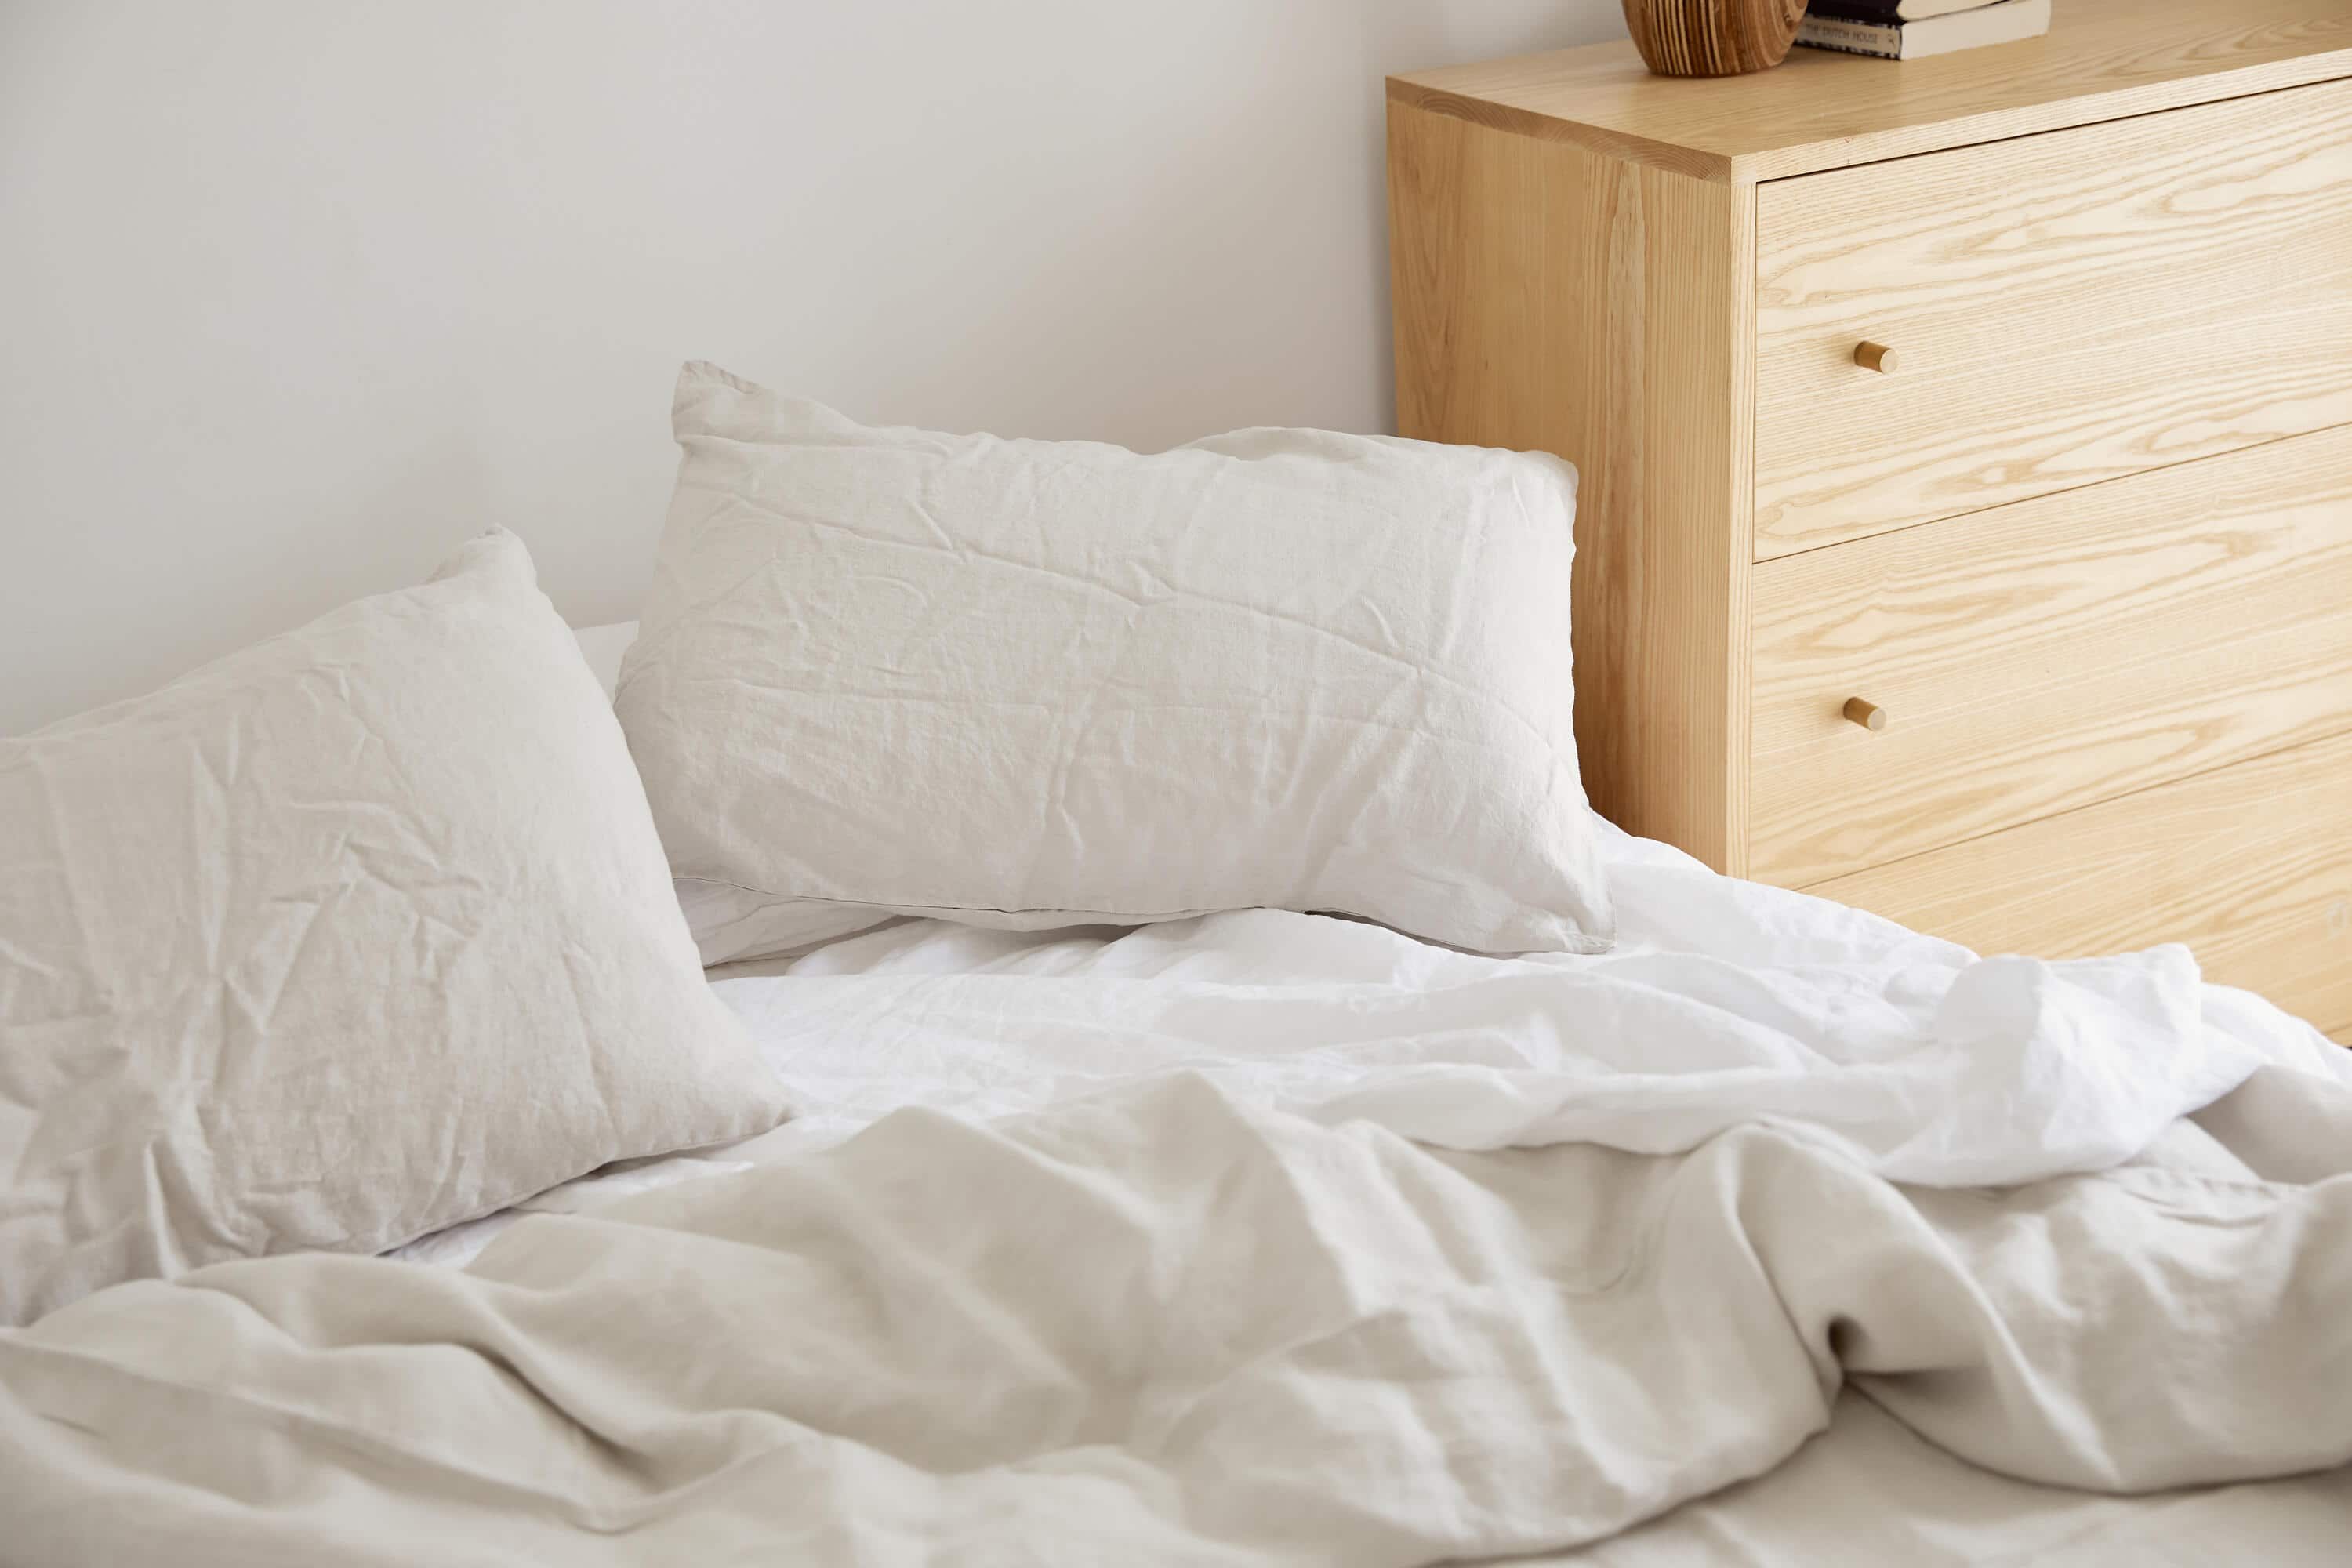 Linen duvet, sheets and pillowcases by IN BED